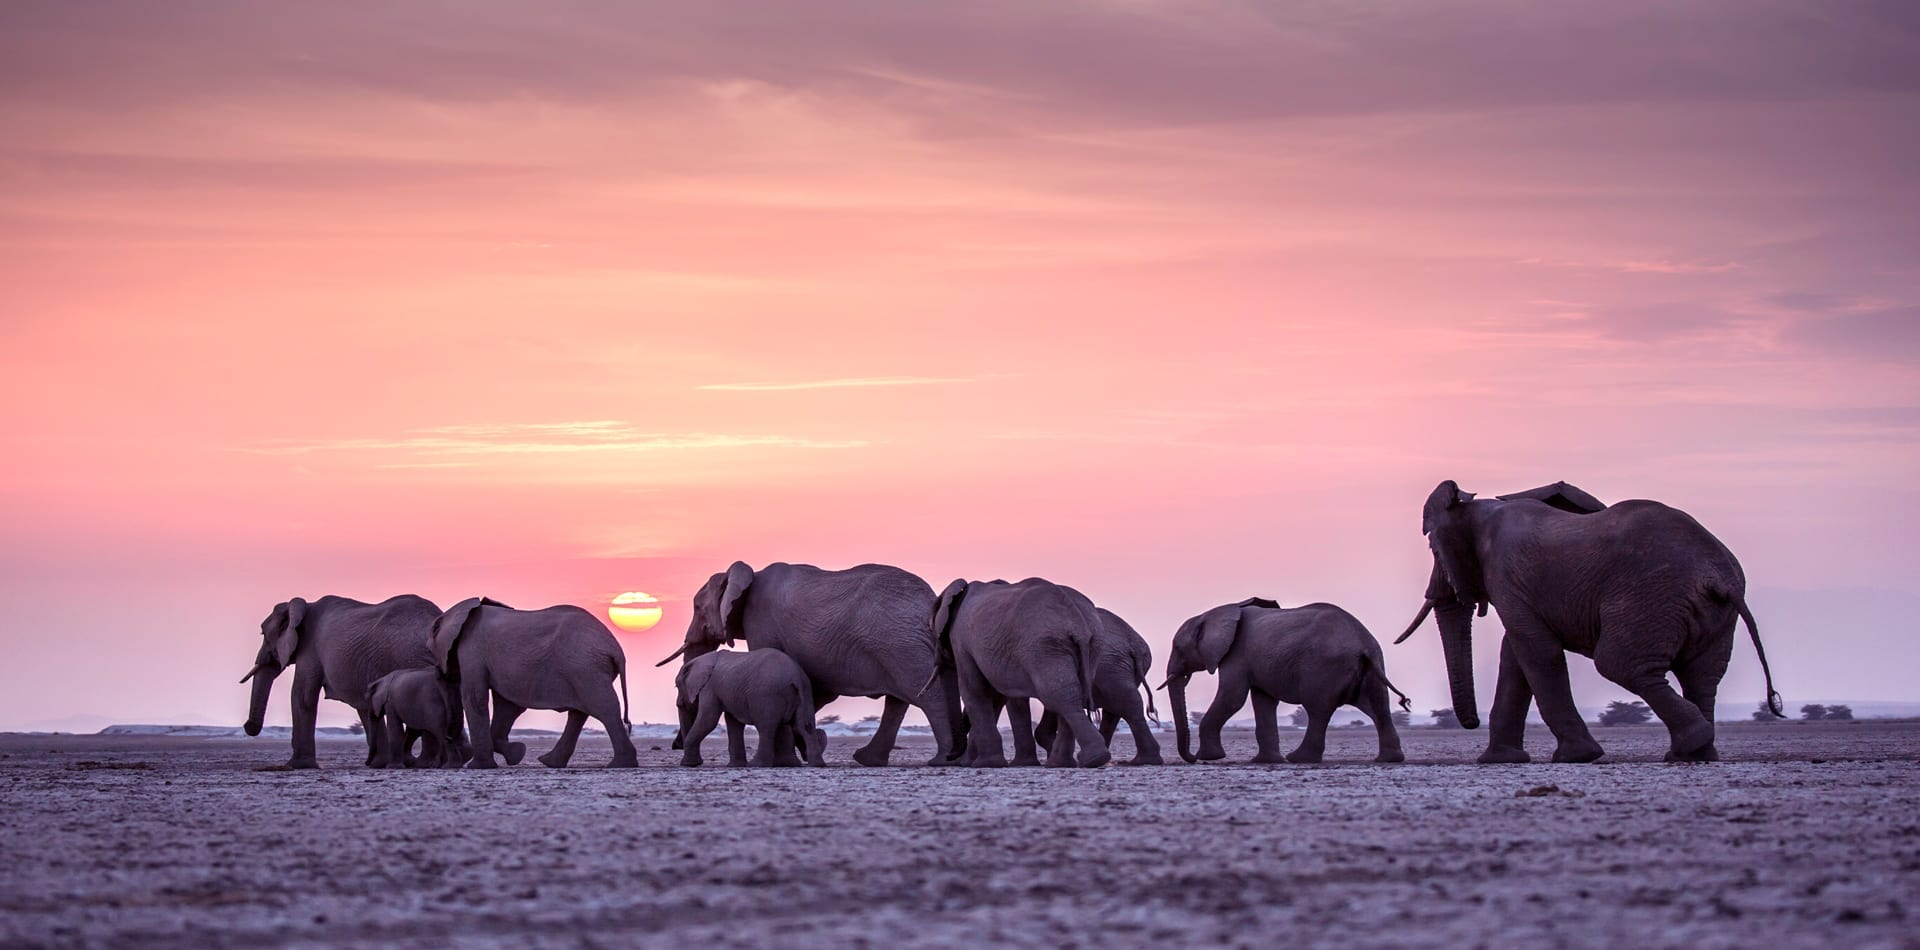 Kenya Elephants Walking Sunset Hero